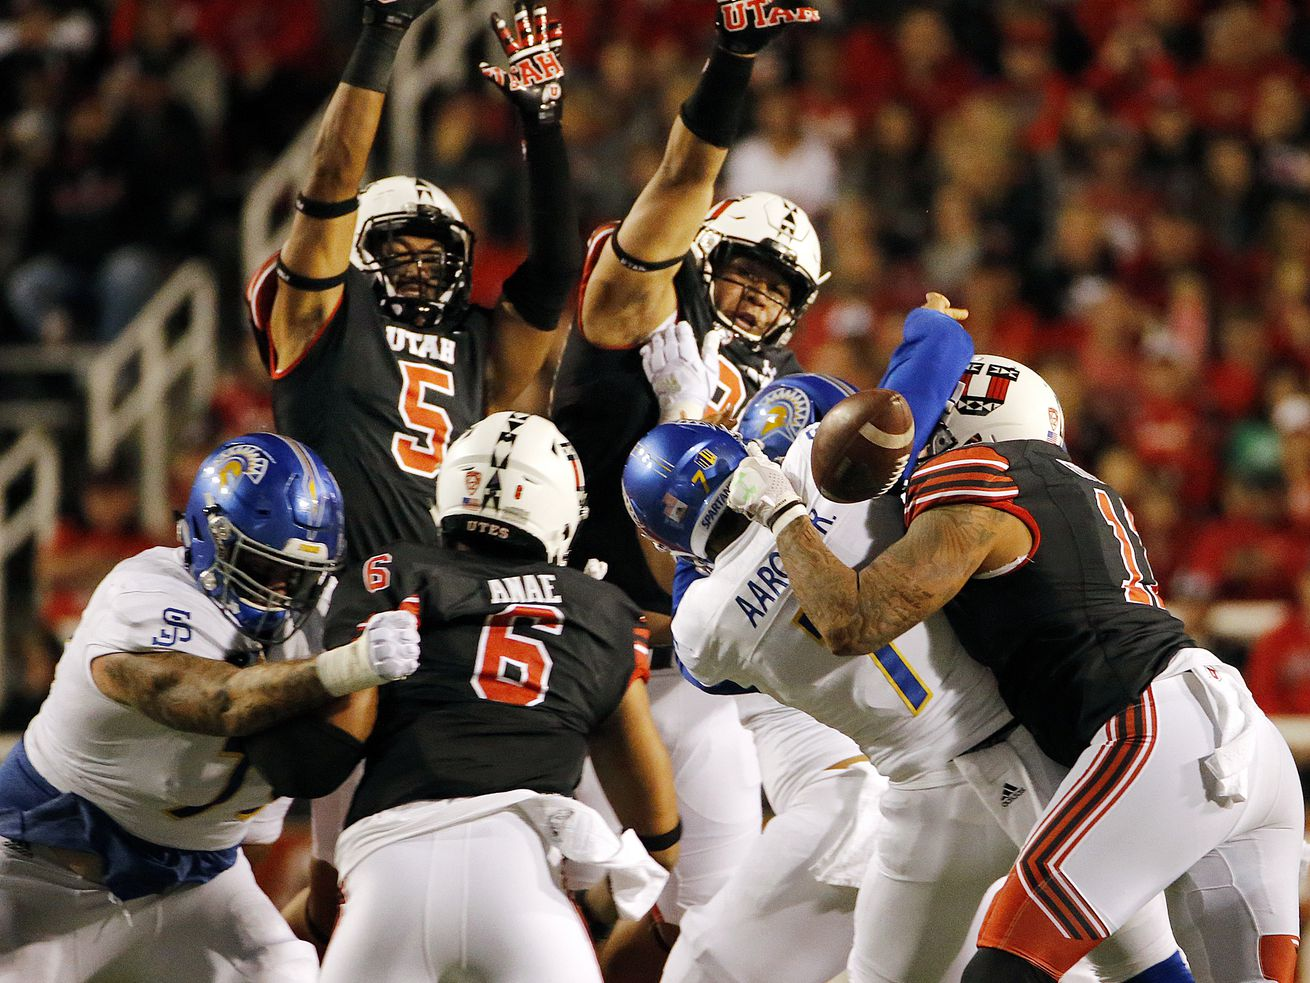 San Jose State Spartans quarterback Montel Aaron fumbles the ball as he is hit by Utah Utes defensive end Kylie Fitts during NCAA football played in Salt Lake City on Saturday, Sept. 16, 2017.